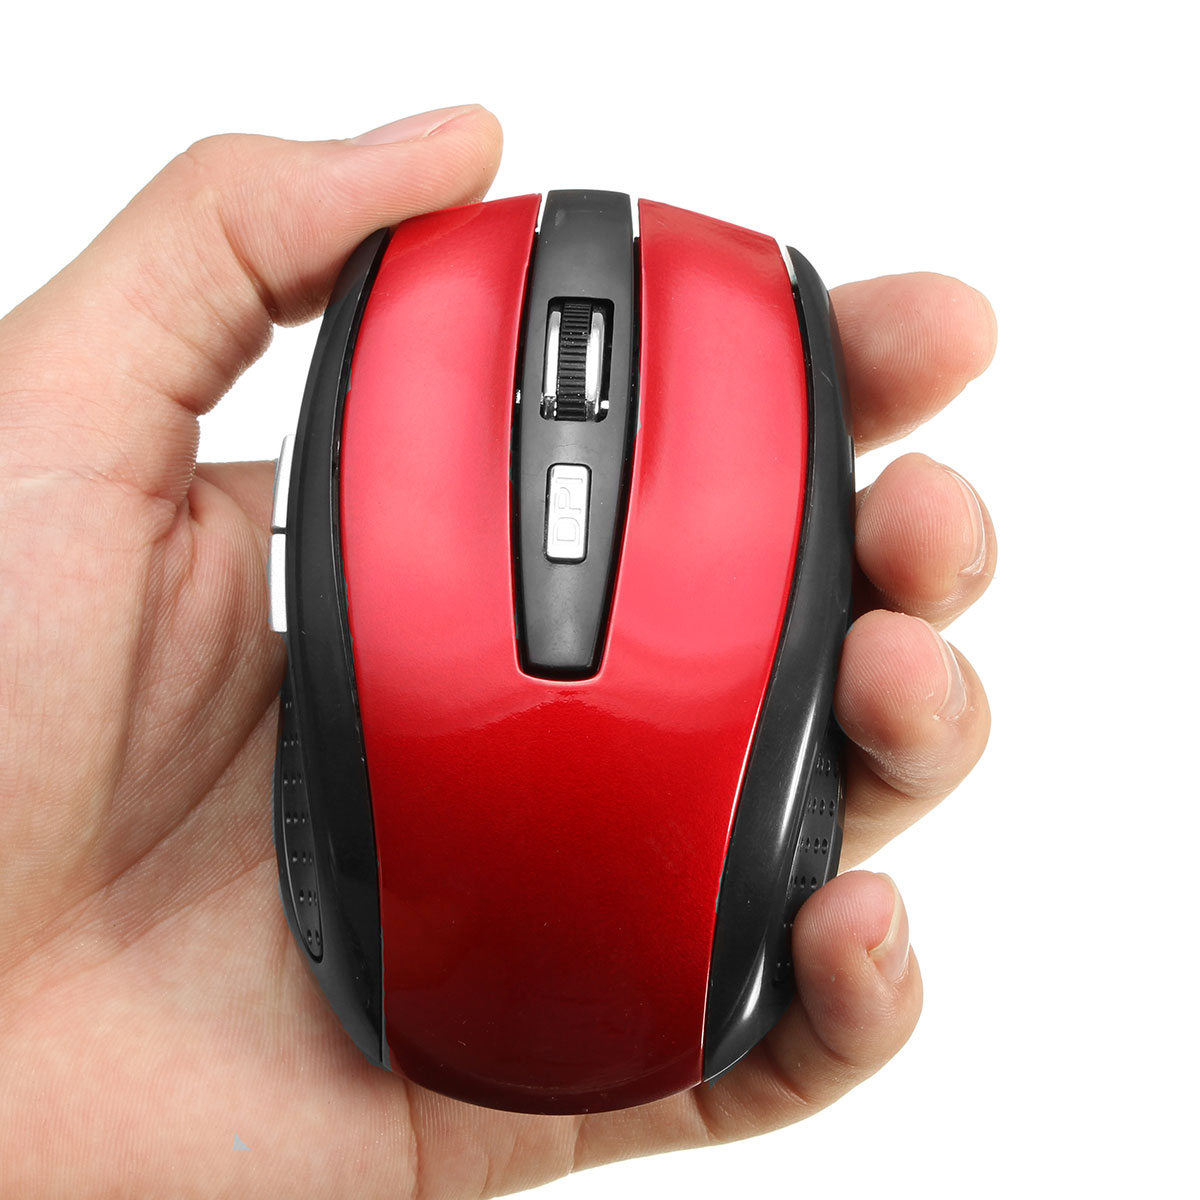 2.4G Wireless Optical Mouse Mice with USB Receiver Adjustable DPI for PC Laptop